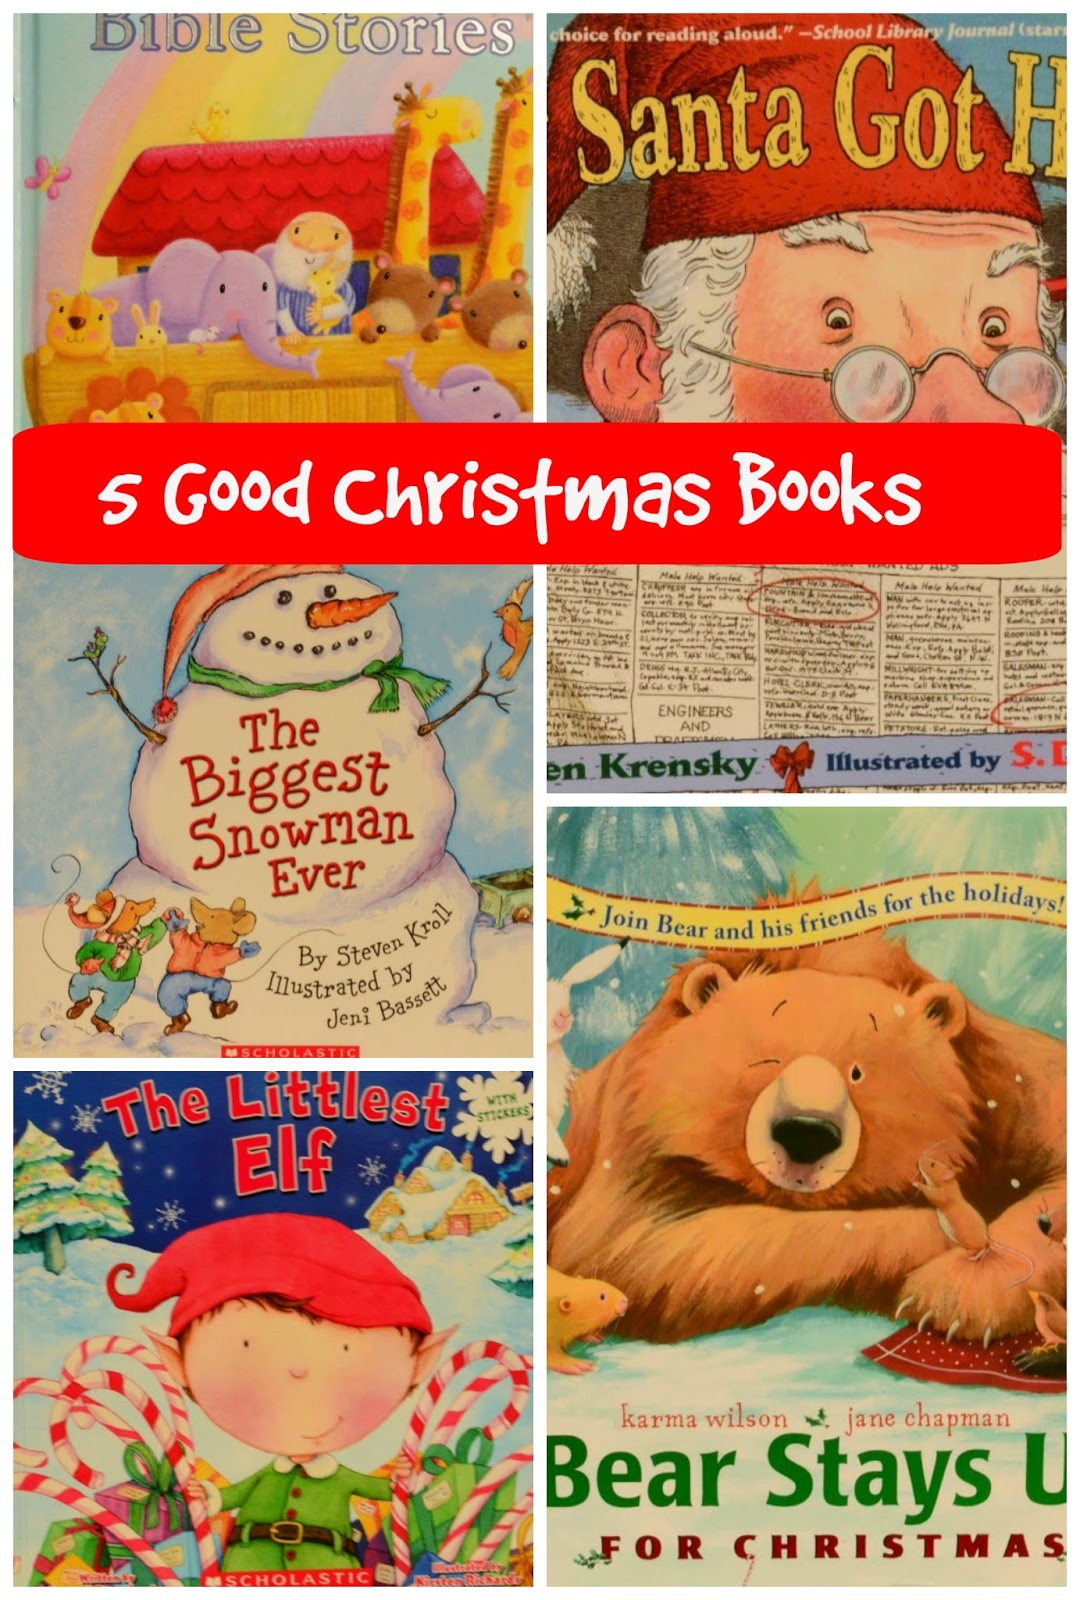 The Practical Mom: 5 Good Christmas Related Books - Introducing Christmas to my 3 y.o.